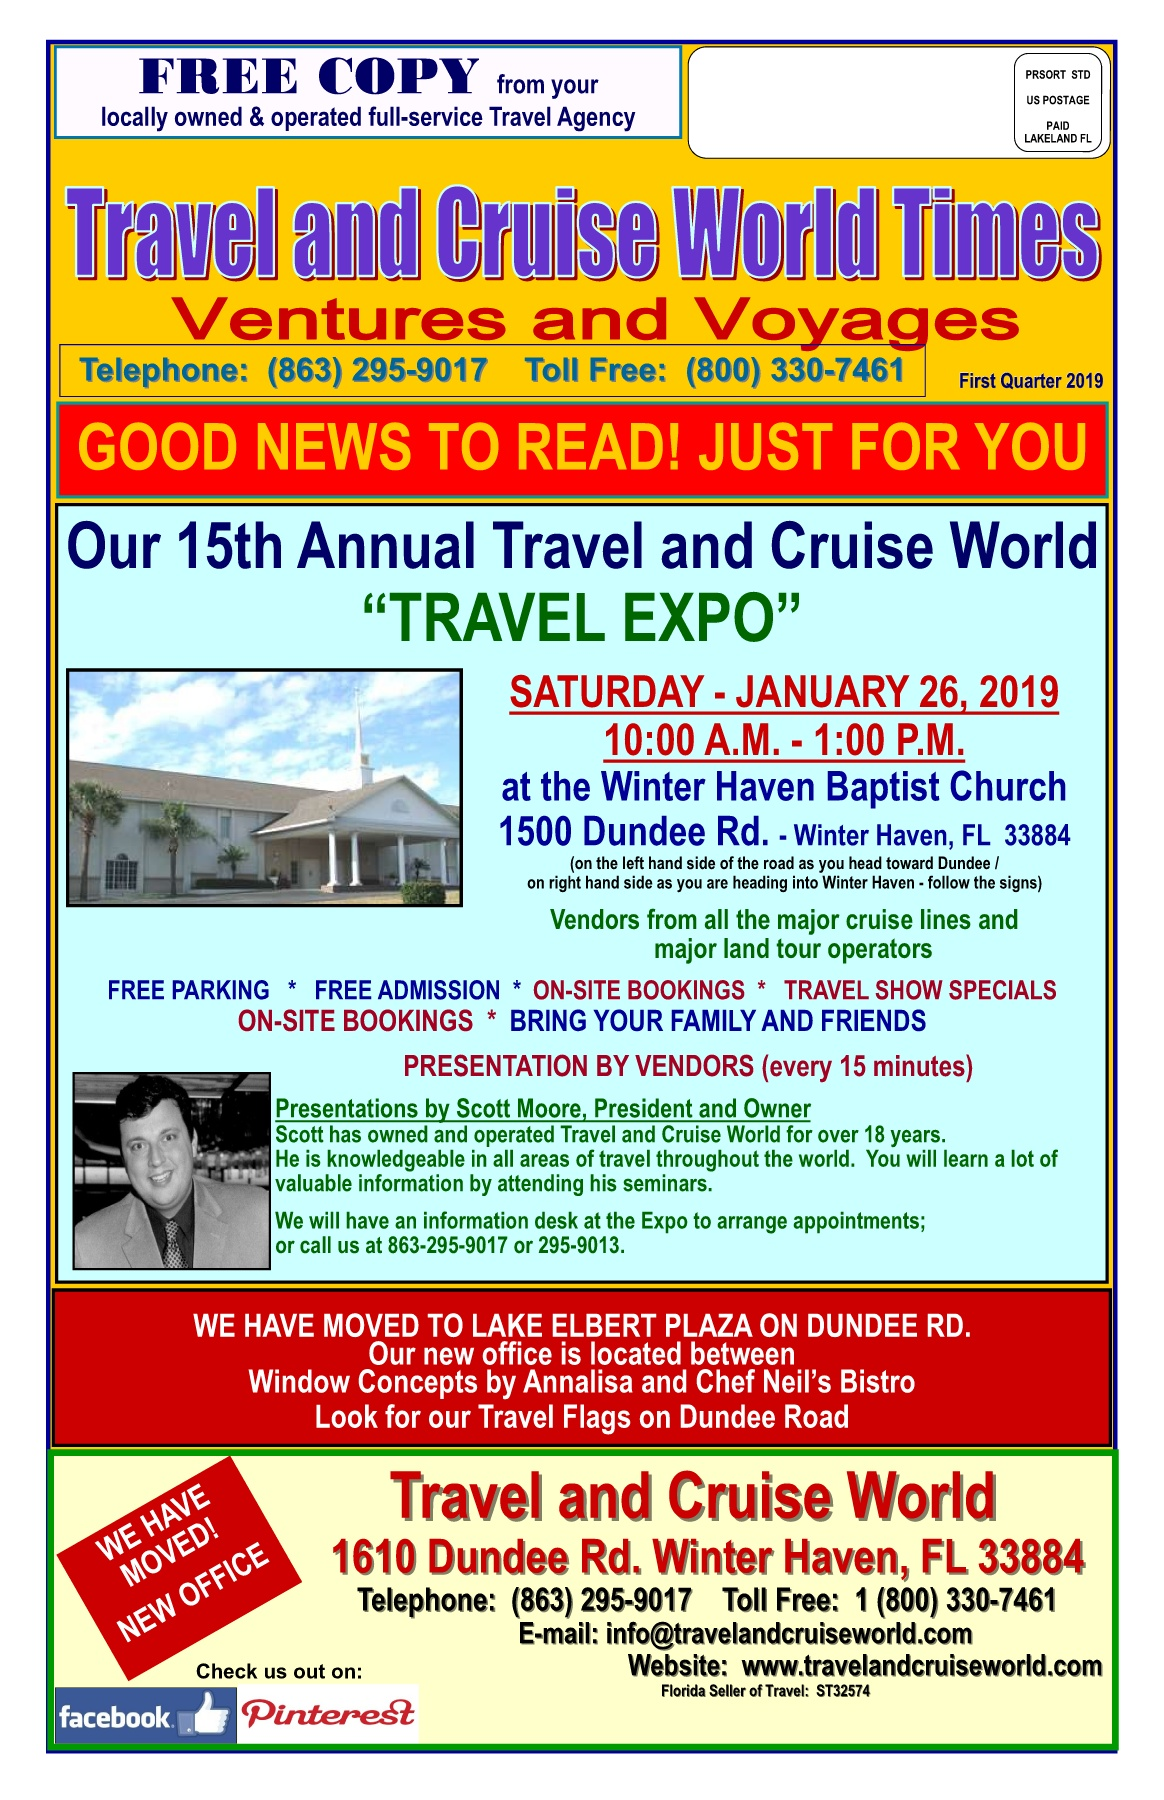 da6ceed43ca3 2019 1st Quarter Travel and Cruise World Ventures and Voyages Newsletter